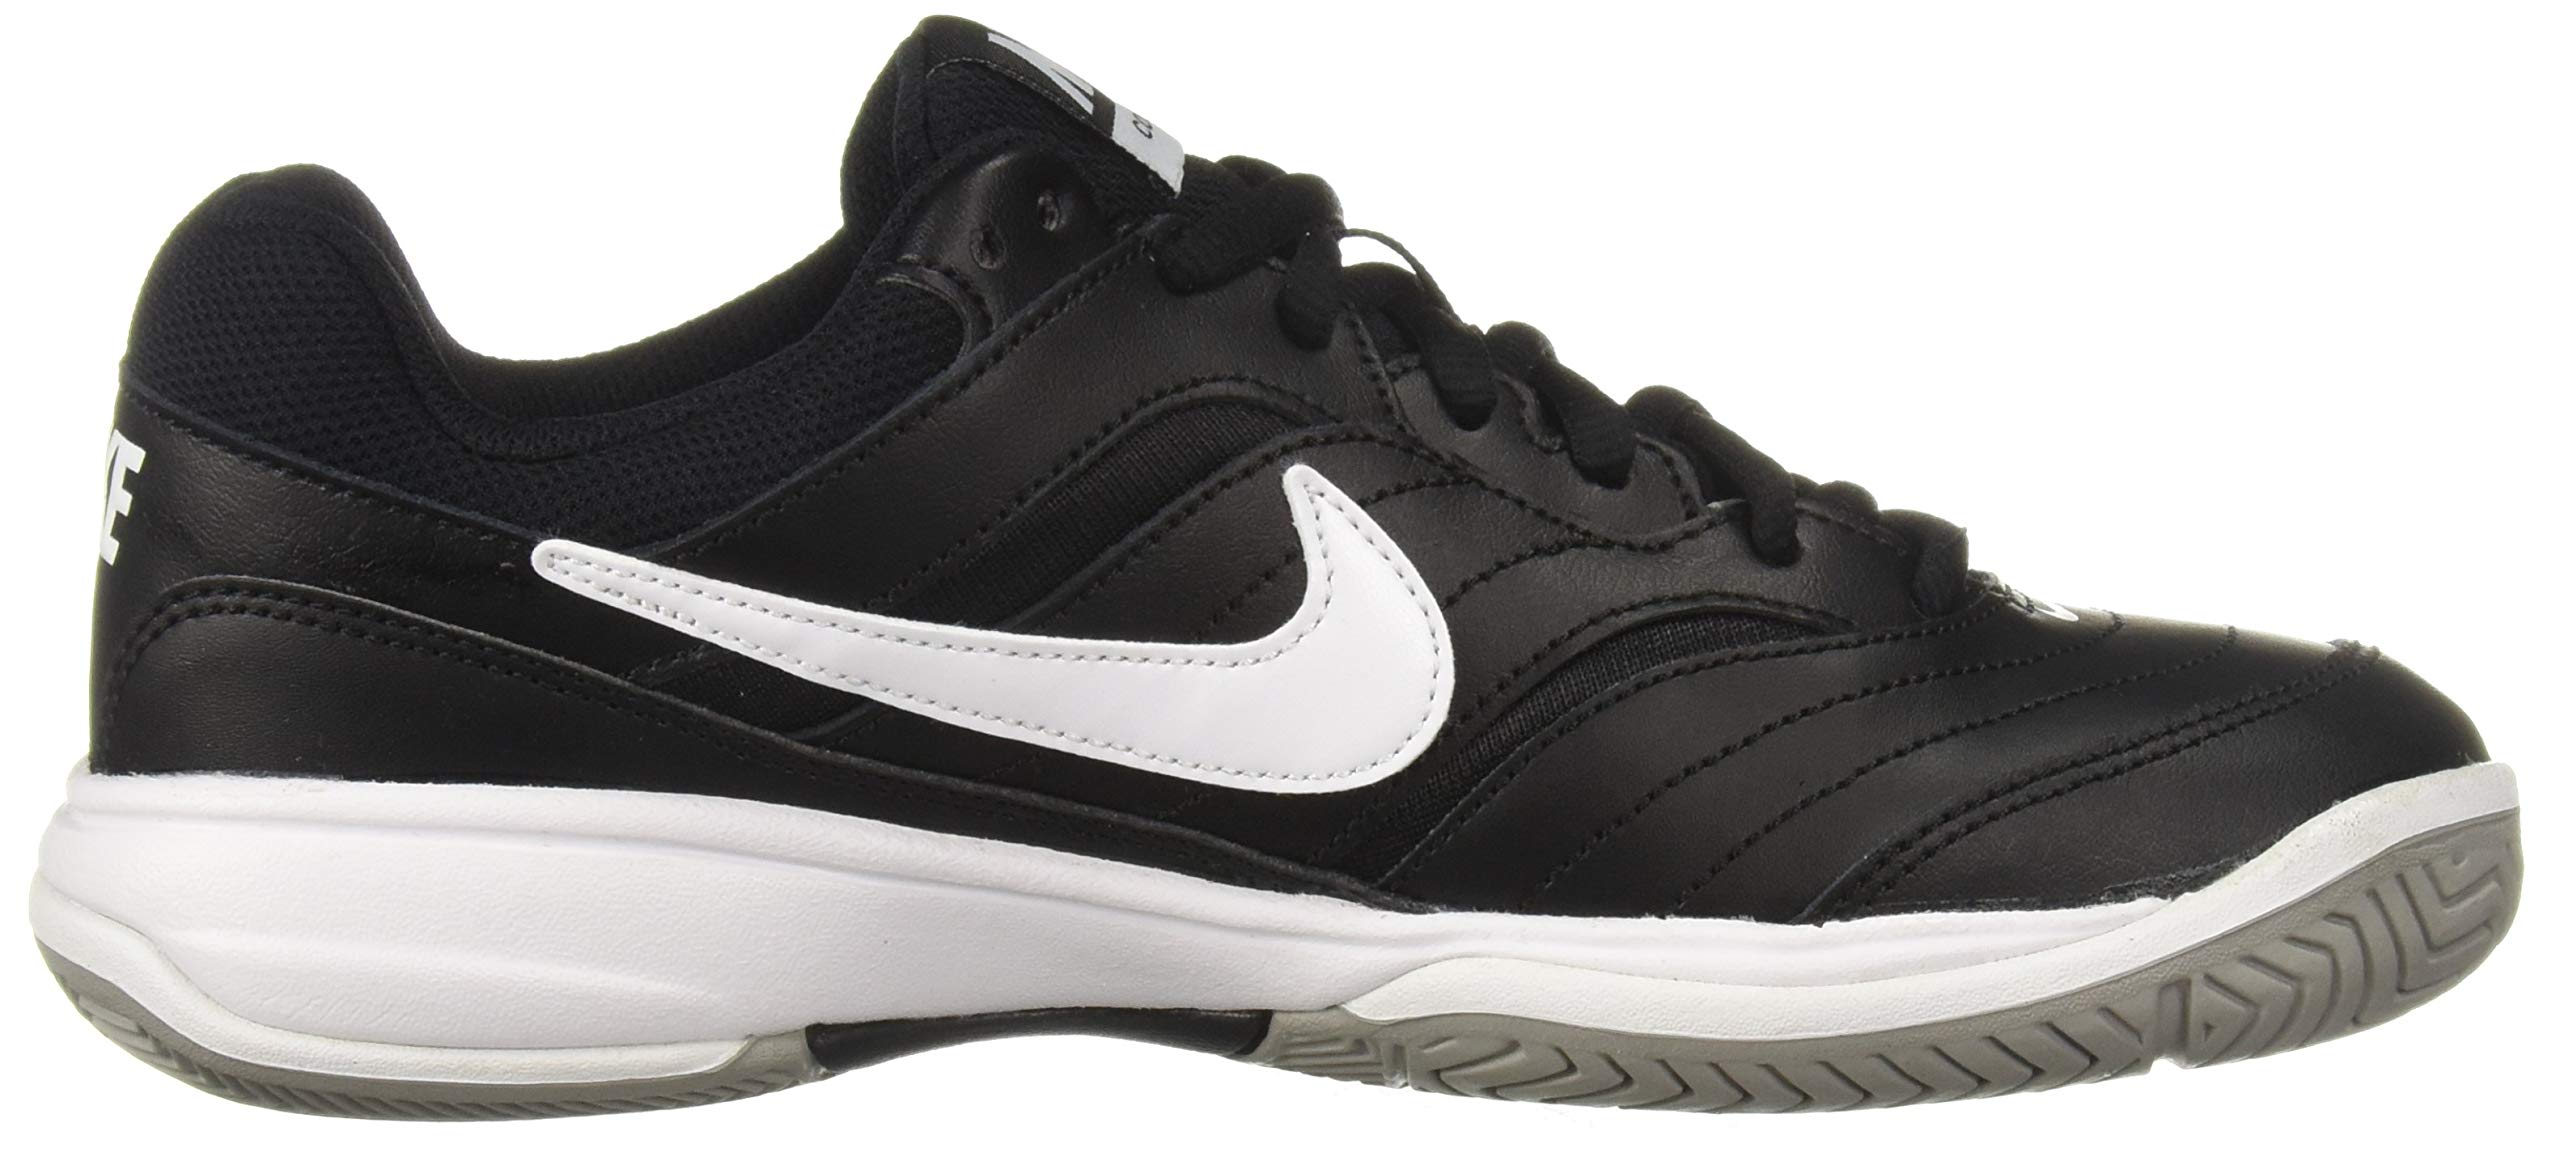 NIKE Men's Court Lite Athletic Shoe, Black/White/Medium Grey, 7.5 Regular US by Nike (Image #7)